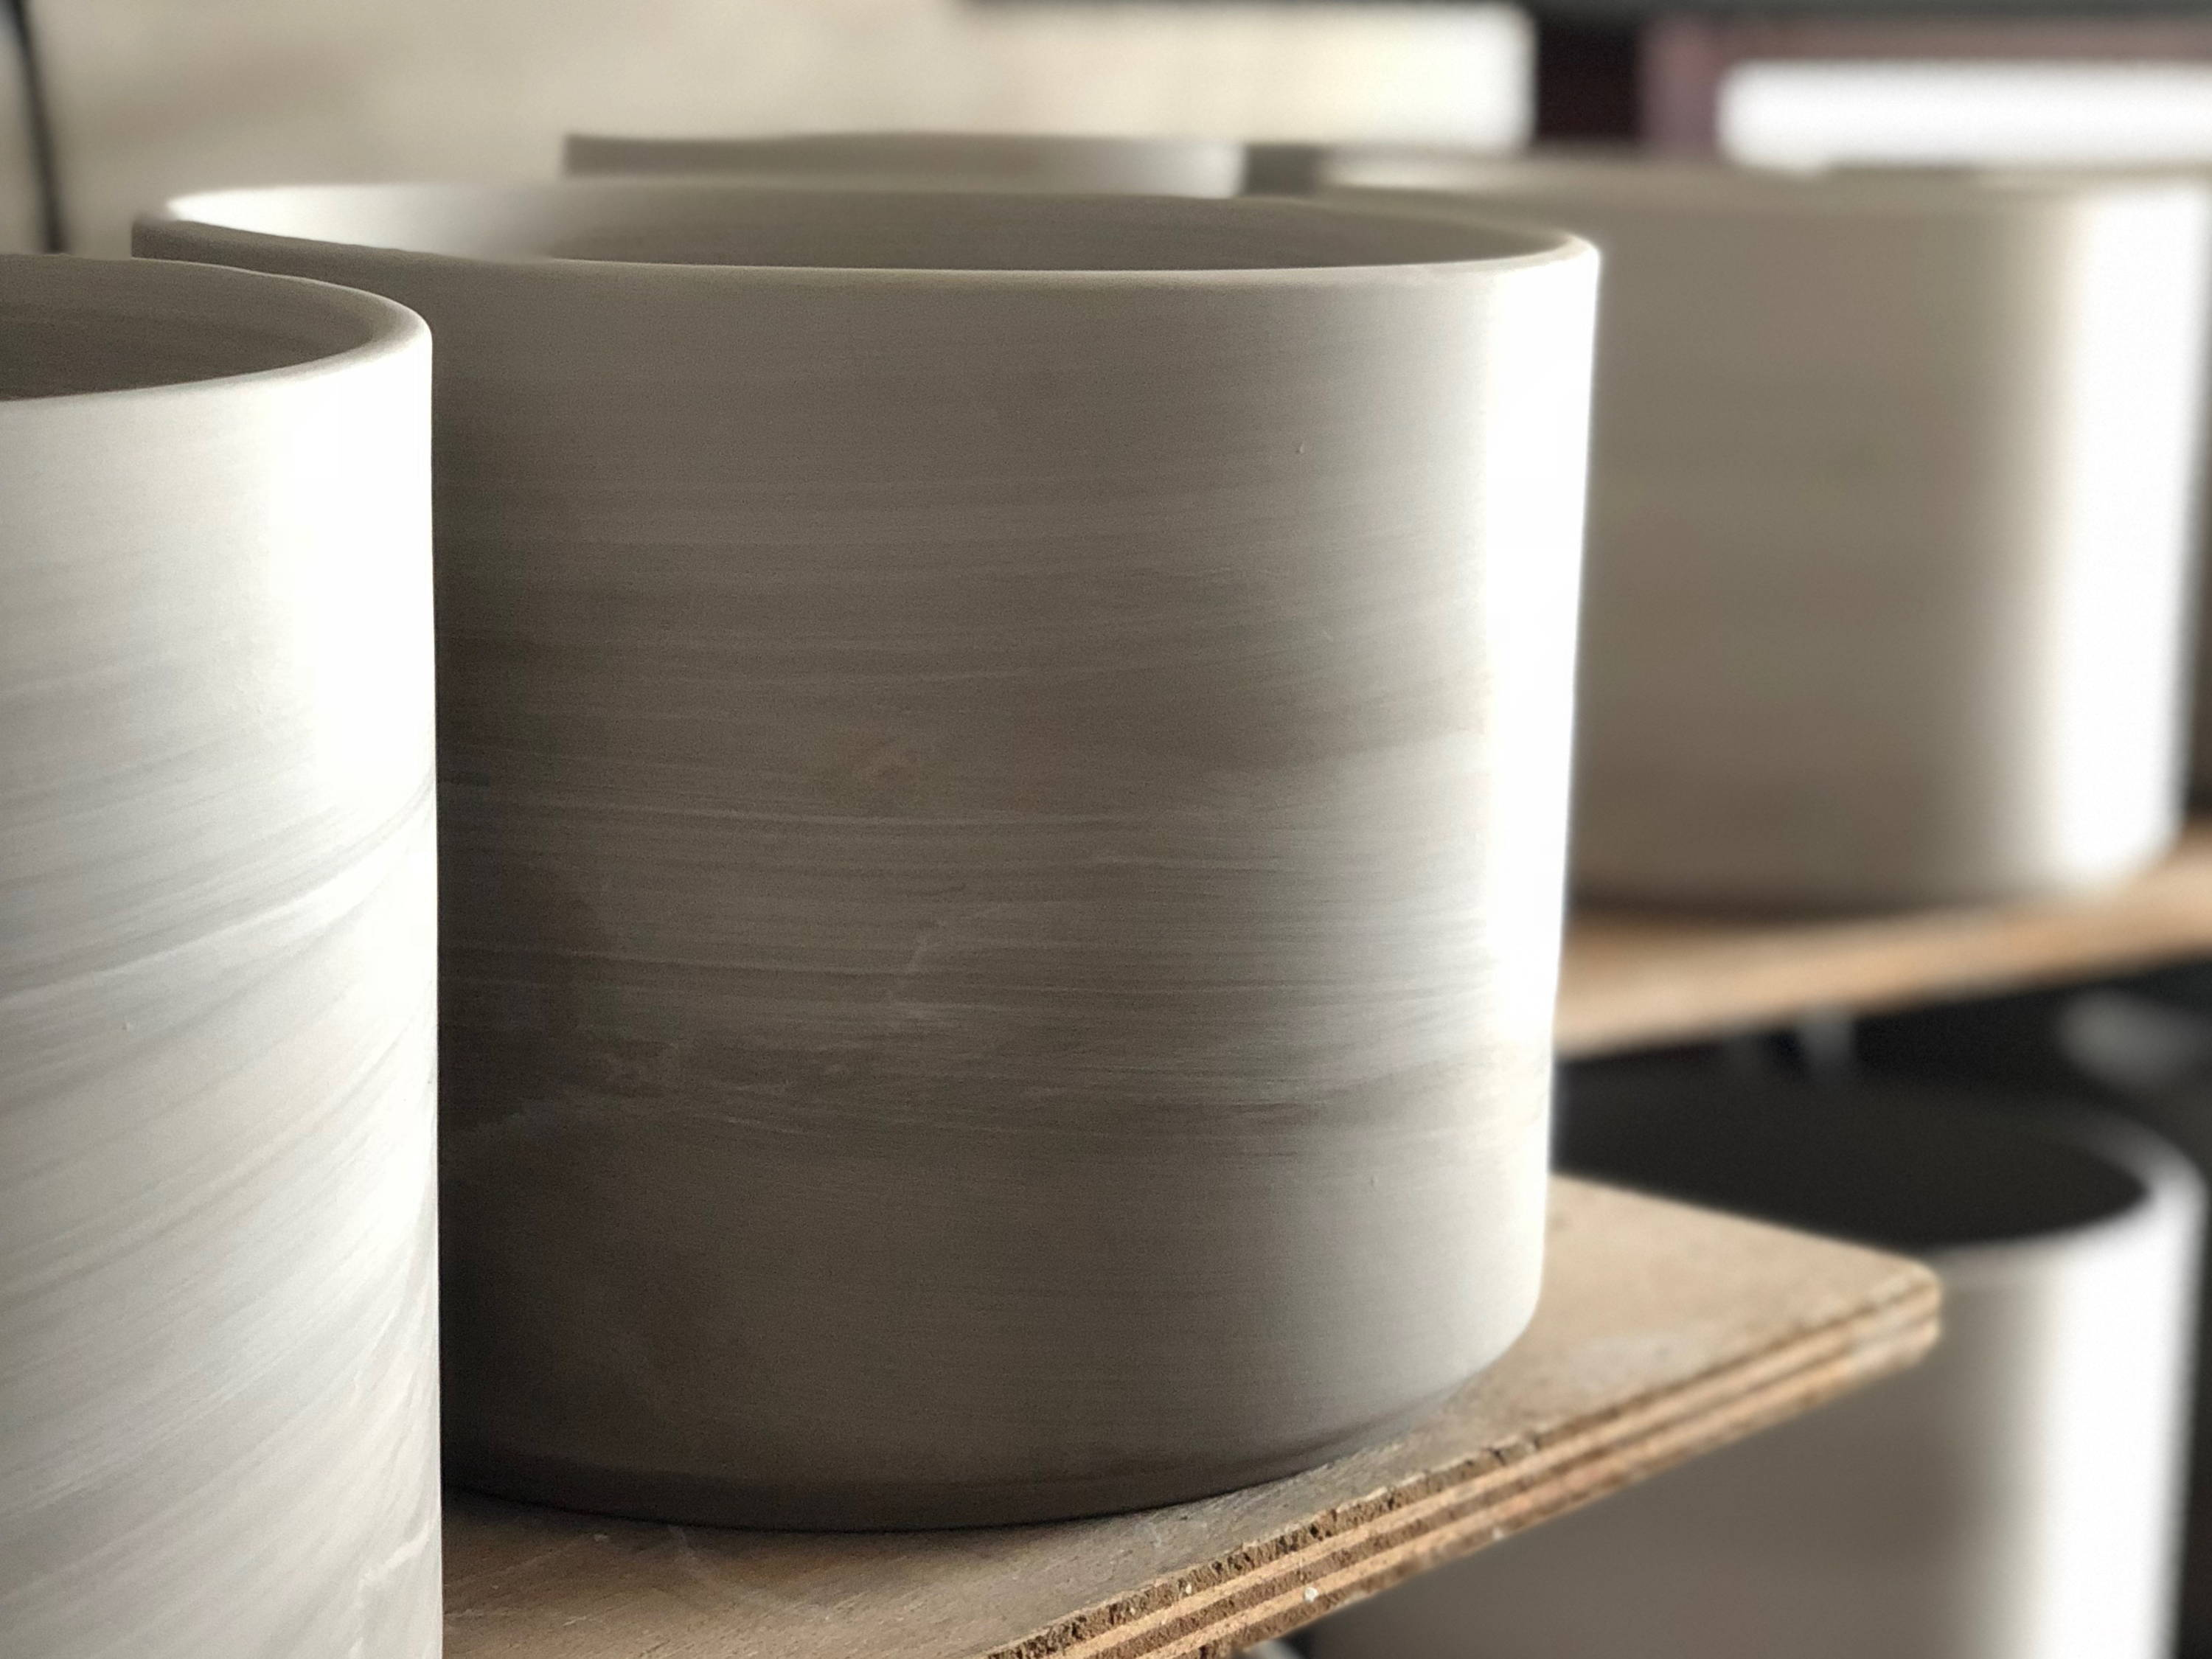 Premium High-Fired Stoneware